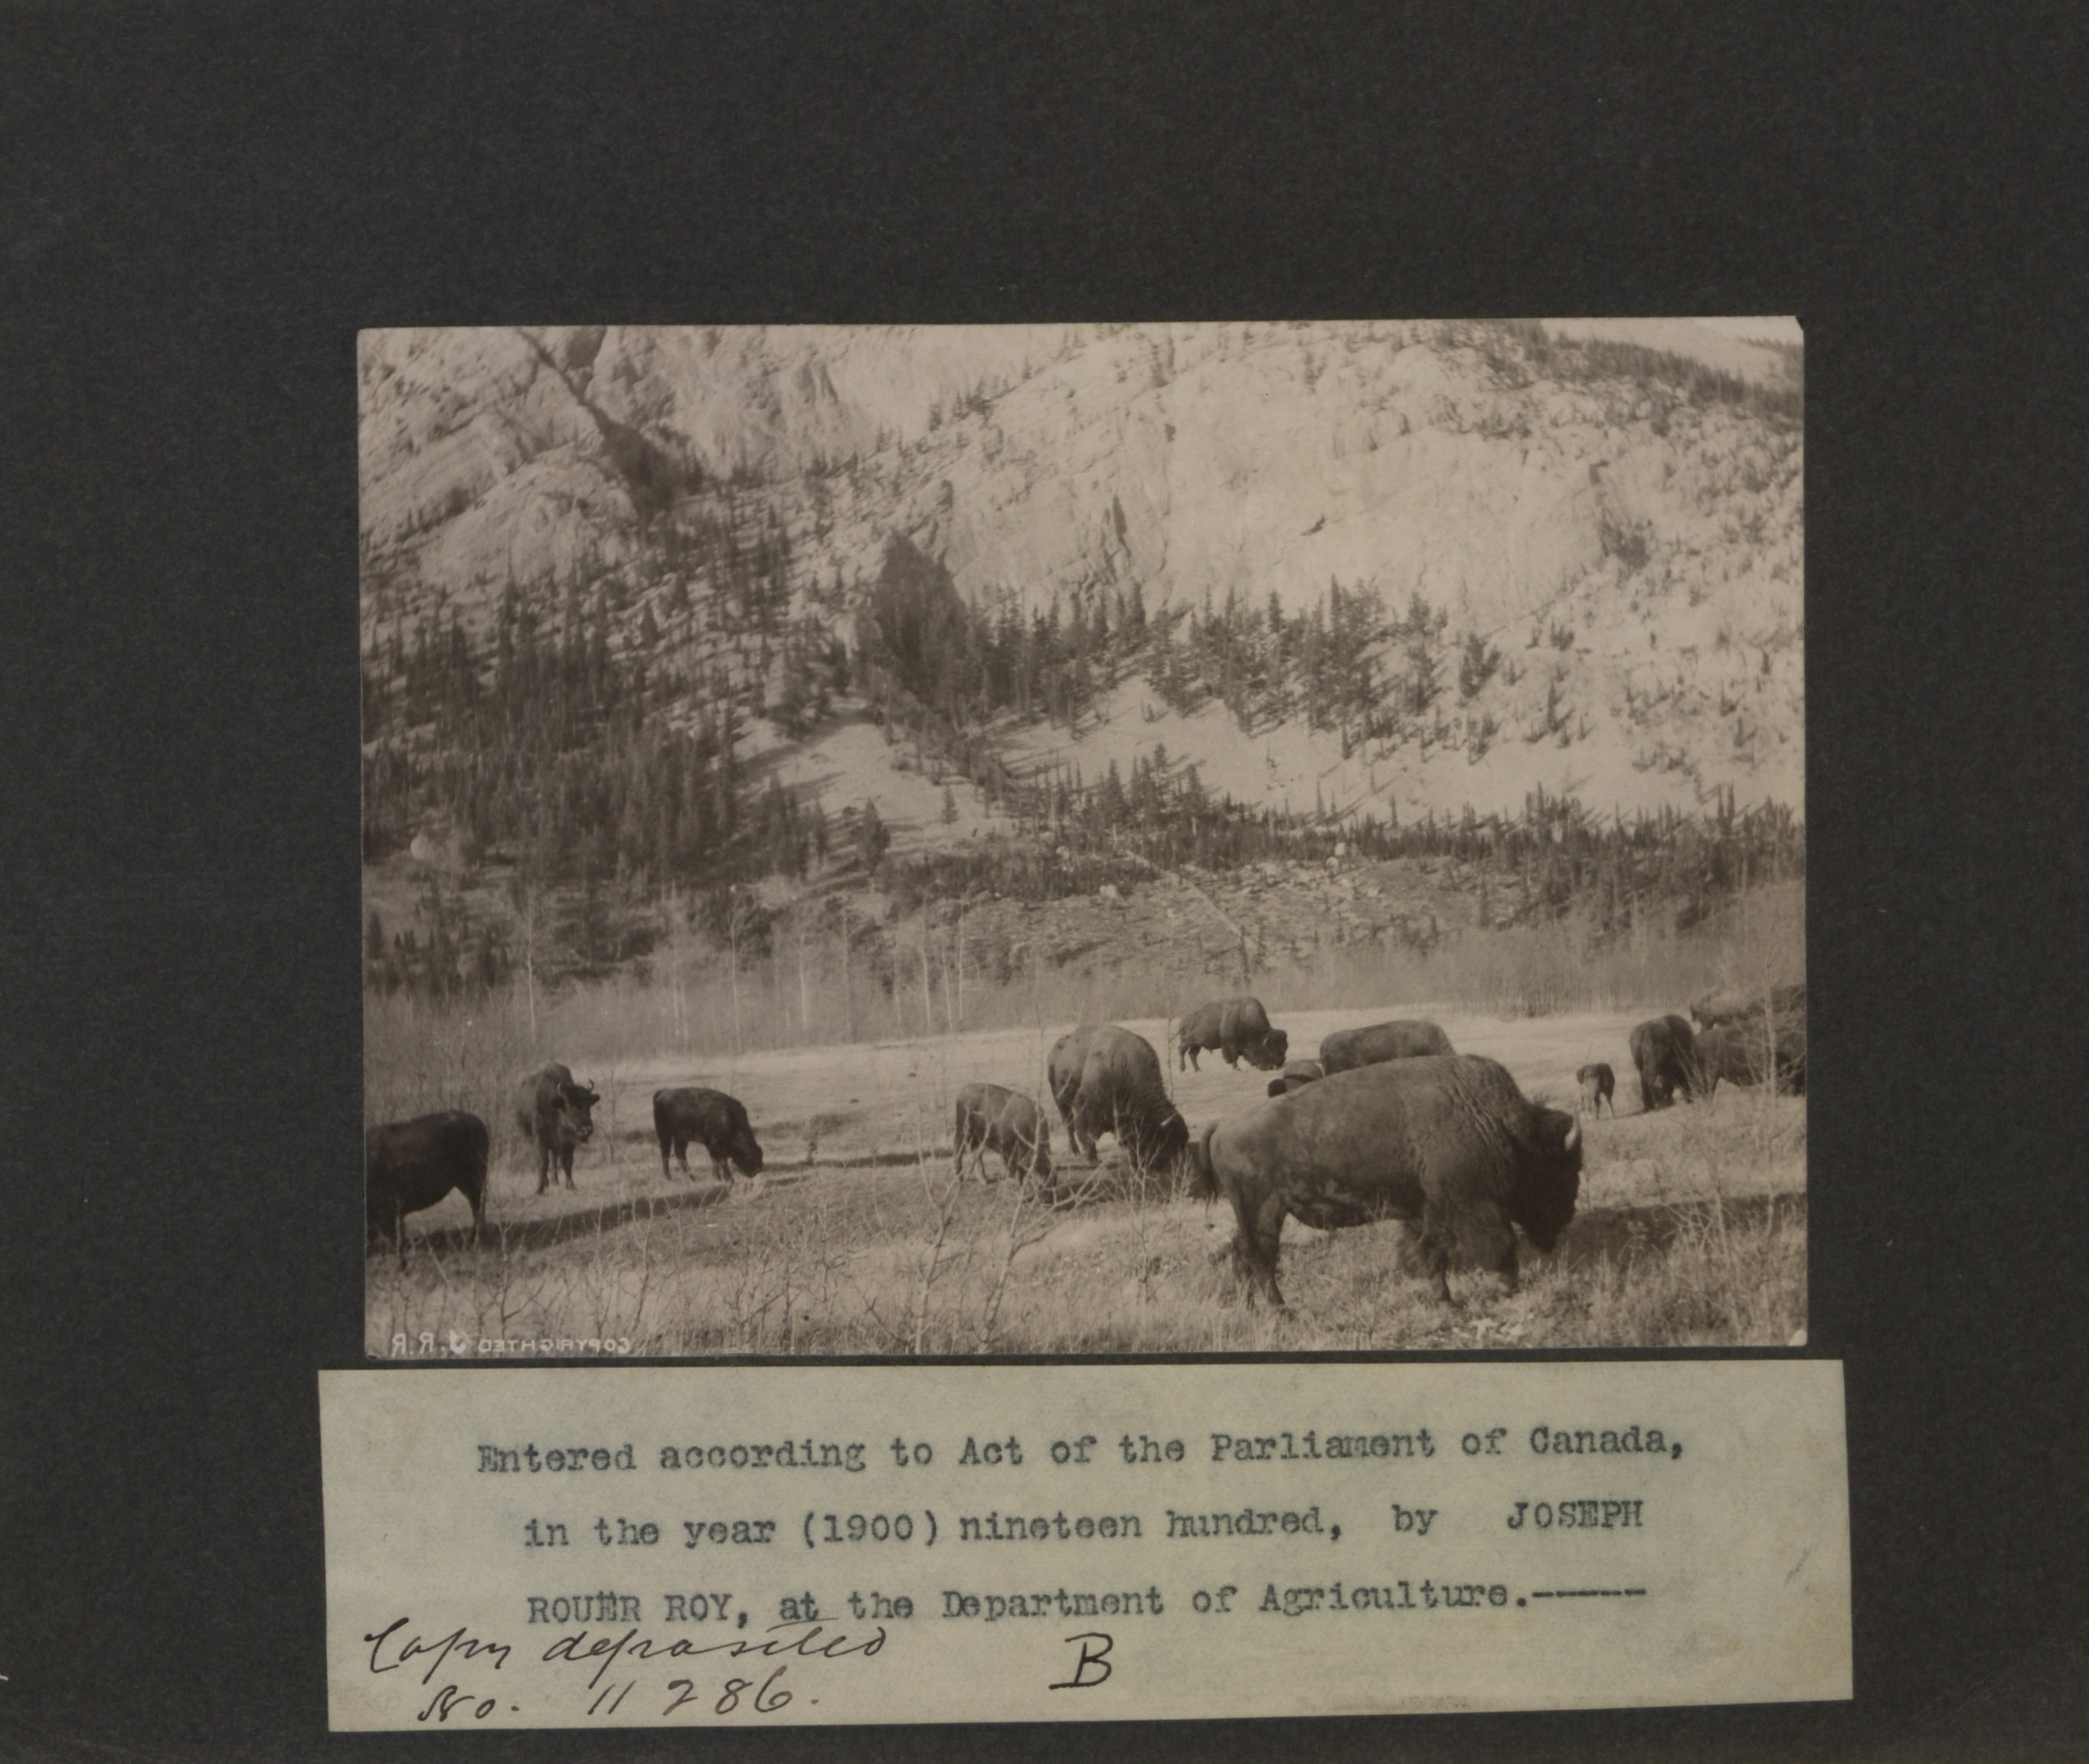 Buffalo herd at the foot of a mountain. Long description available.